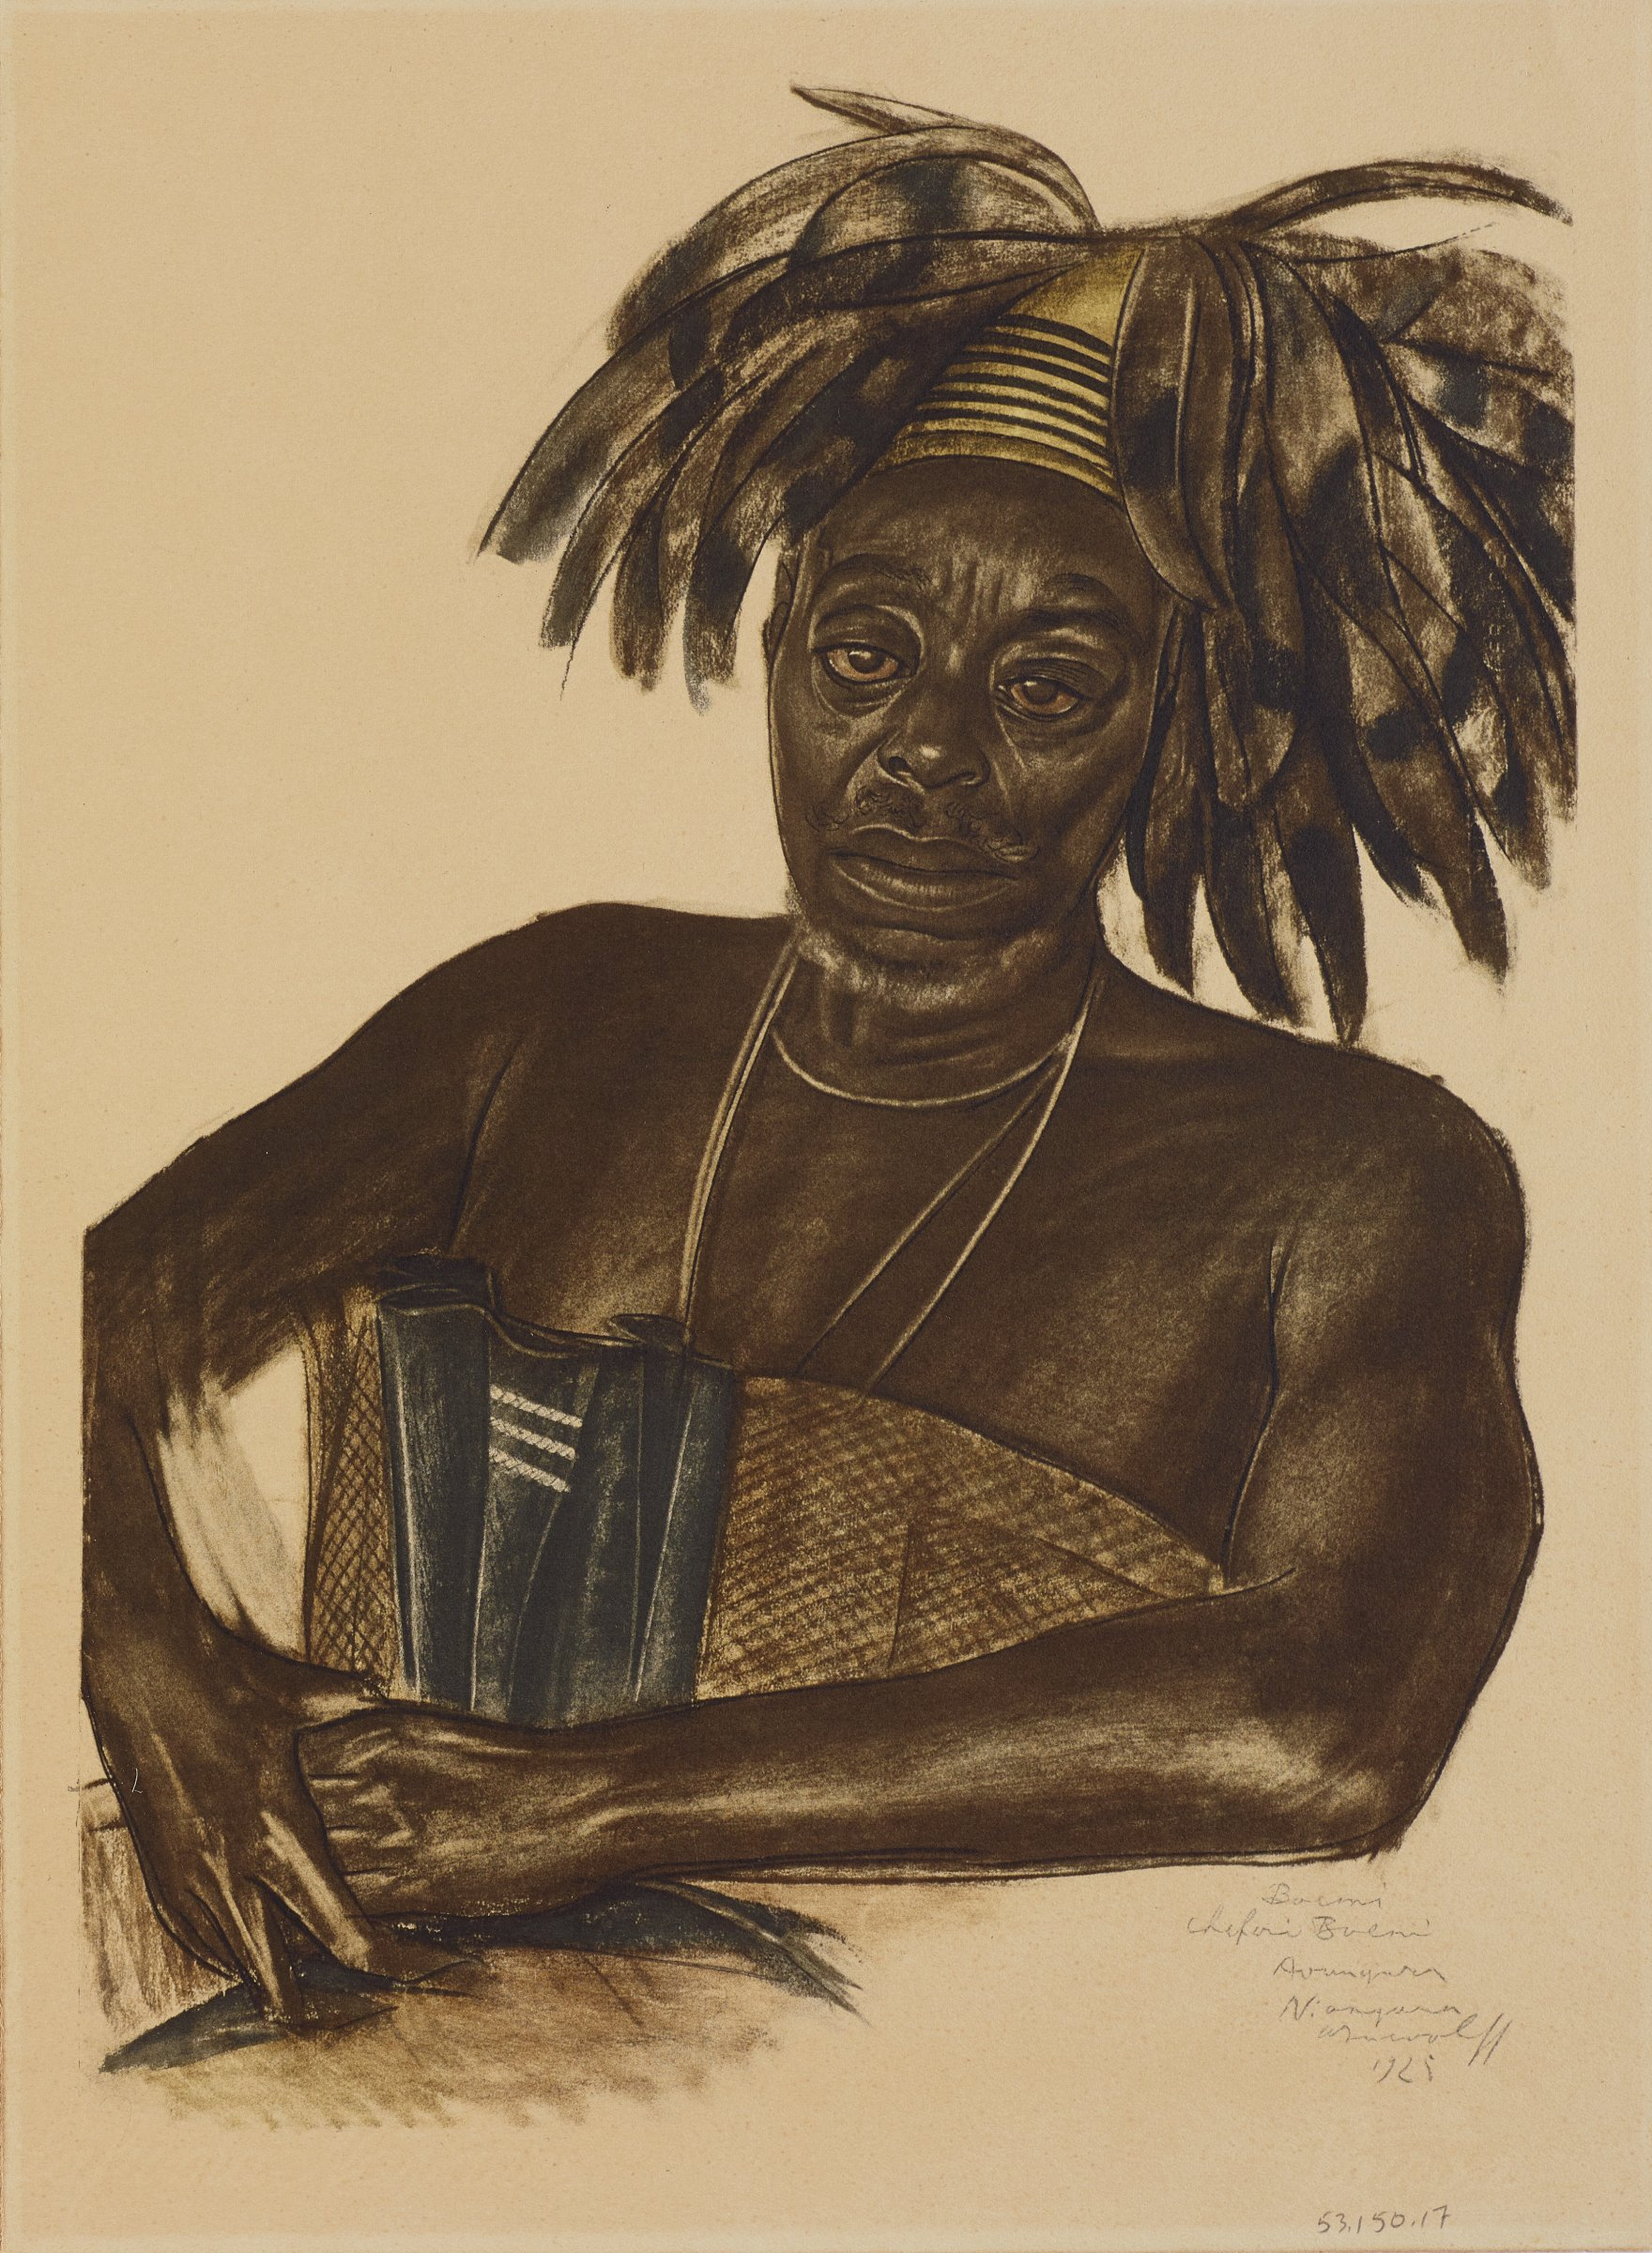 Half-length portrait of male figure wearing headwear decorated with dark feathers. He faces out toward the viewer as his hands lay crossed in his lap. This series is a product of Jacovleff's involvement in the Expédition Citroën Centre-Afrique.